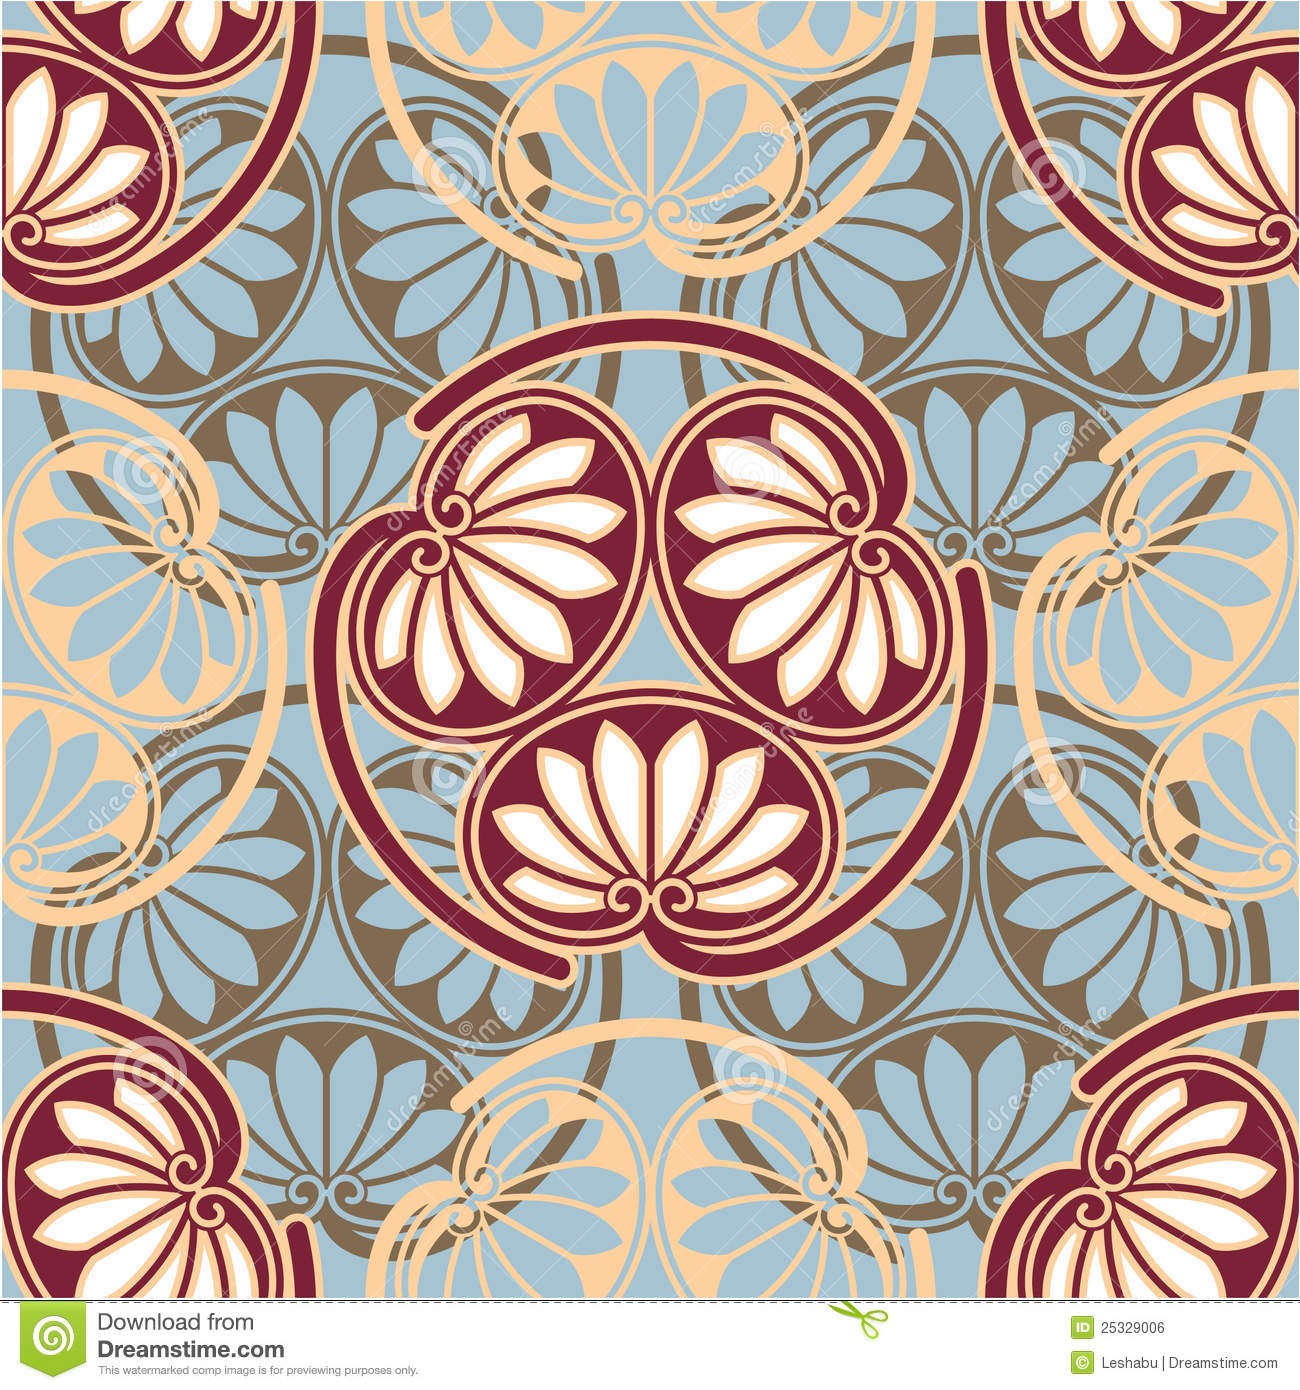 Royalty Free Stock Image Oriental Japanese Seamless Pattern Image25329006 further Kitchen moreover Imagepageindo07 additionally A Courtyard House furthermore Datei Thatched roof in Ichinose  Enzan  Yamanashi. on traditional japanese floor plans